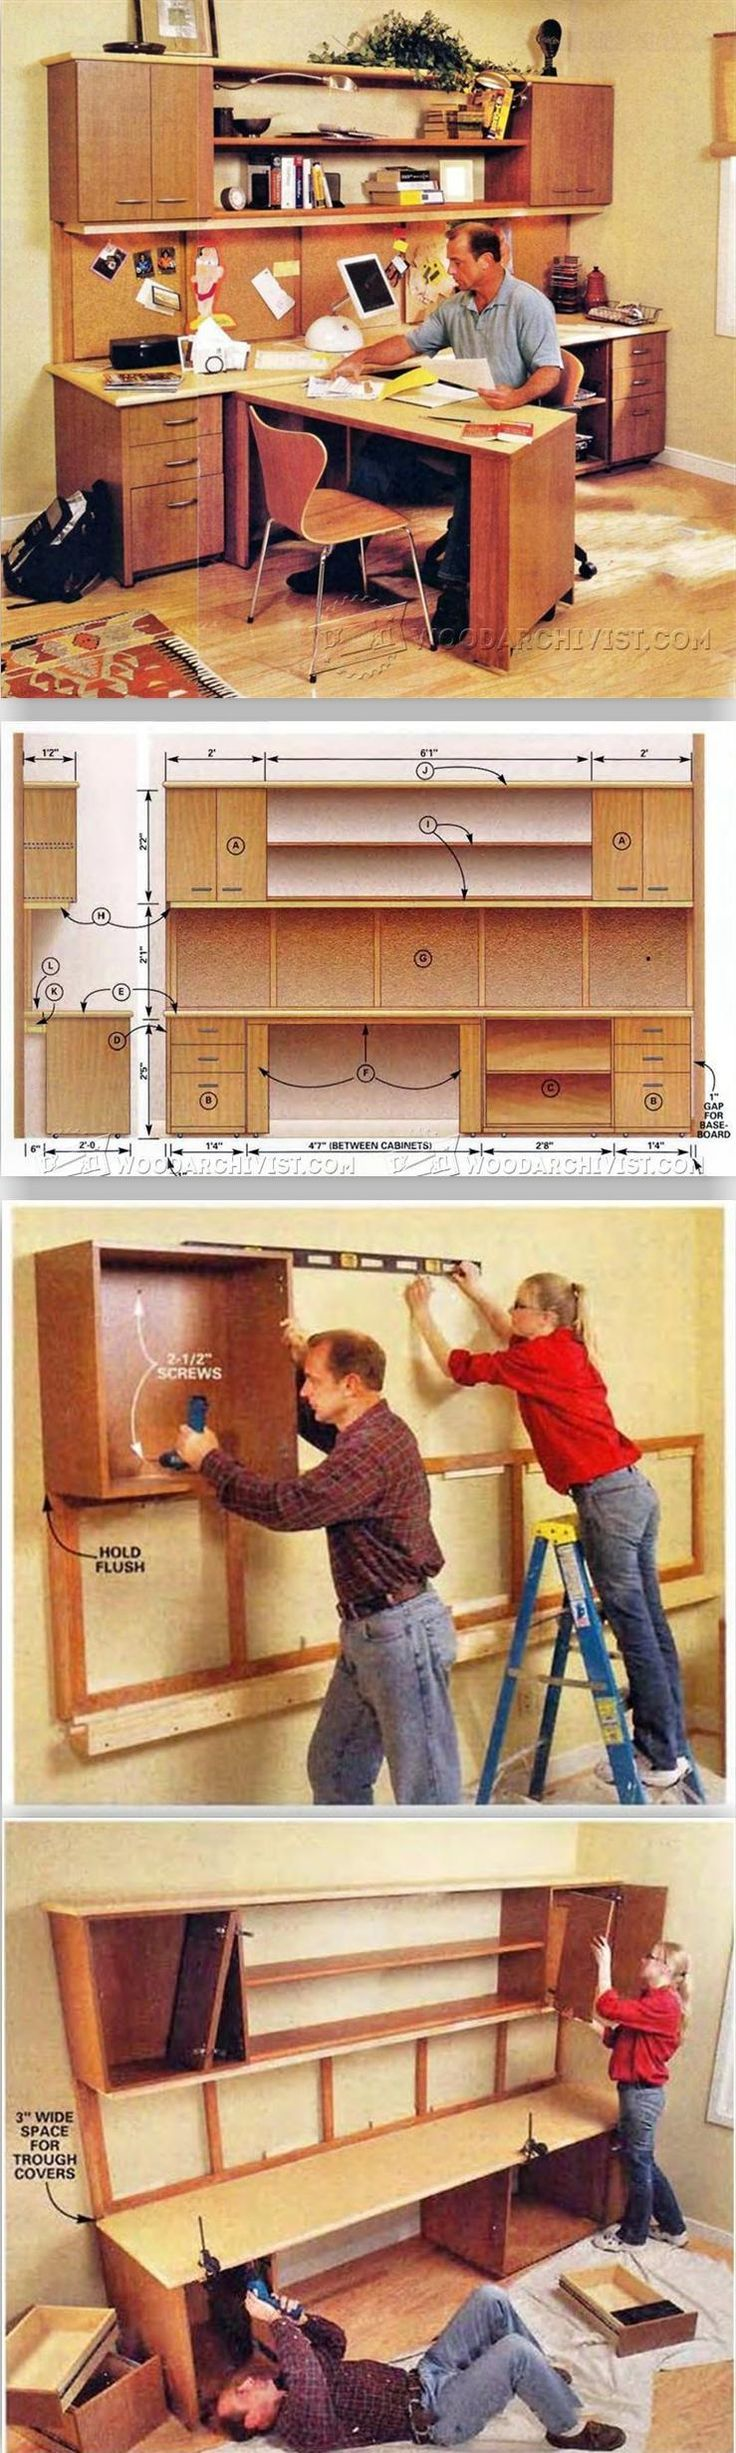 Home Office Furniture Plans - Furniture Plans and Projects   WoodArchivist.com